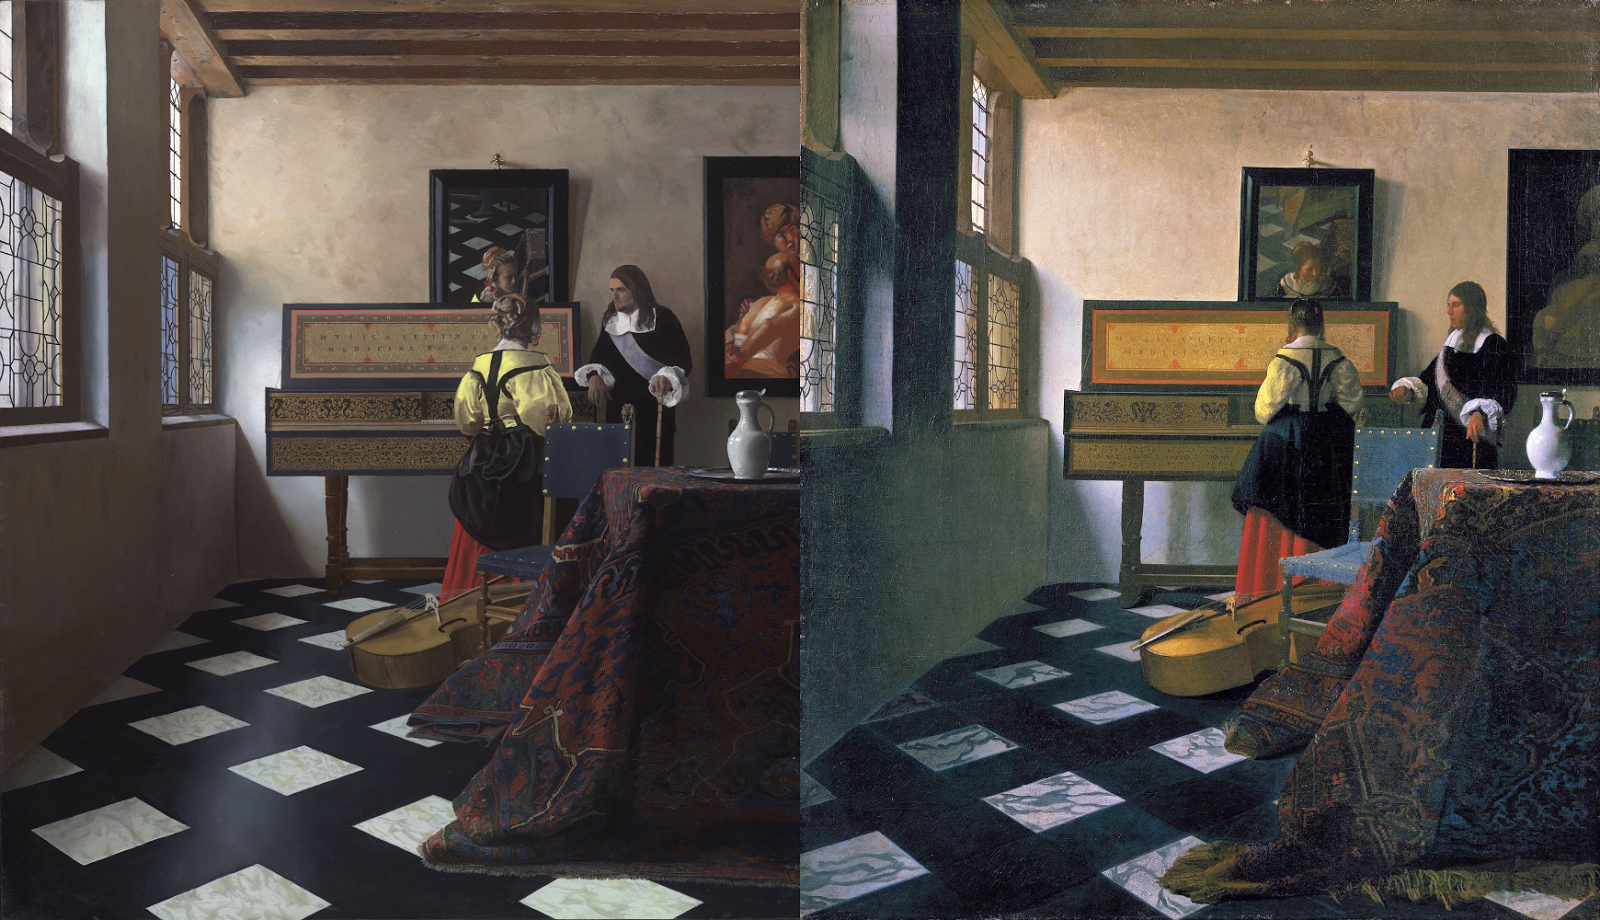 a comparison of paintings by jan vermeer and artemisia gentileschi A comparison of paintings by jan vermeer and artemisia gentileschi pages 1 words 256 view full essay more essays like this: comparison of painting, jan vermeer, artemisia gentileschi not sure what i'd do without @kibin - alfredo alvarez, student @ miami university exactly what i needed - jenna kraig, student @ ucla.